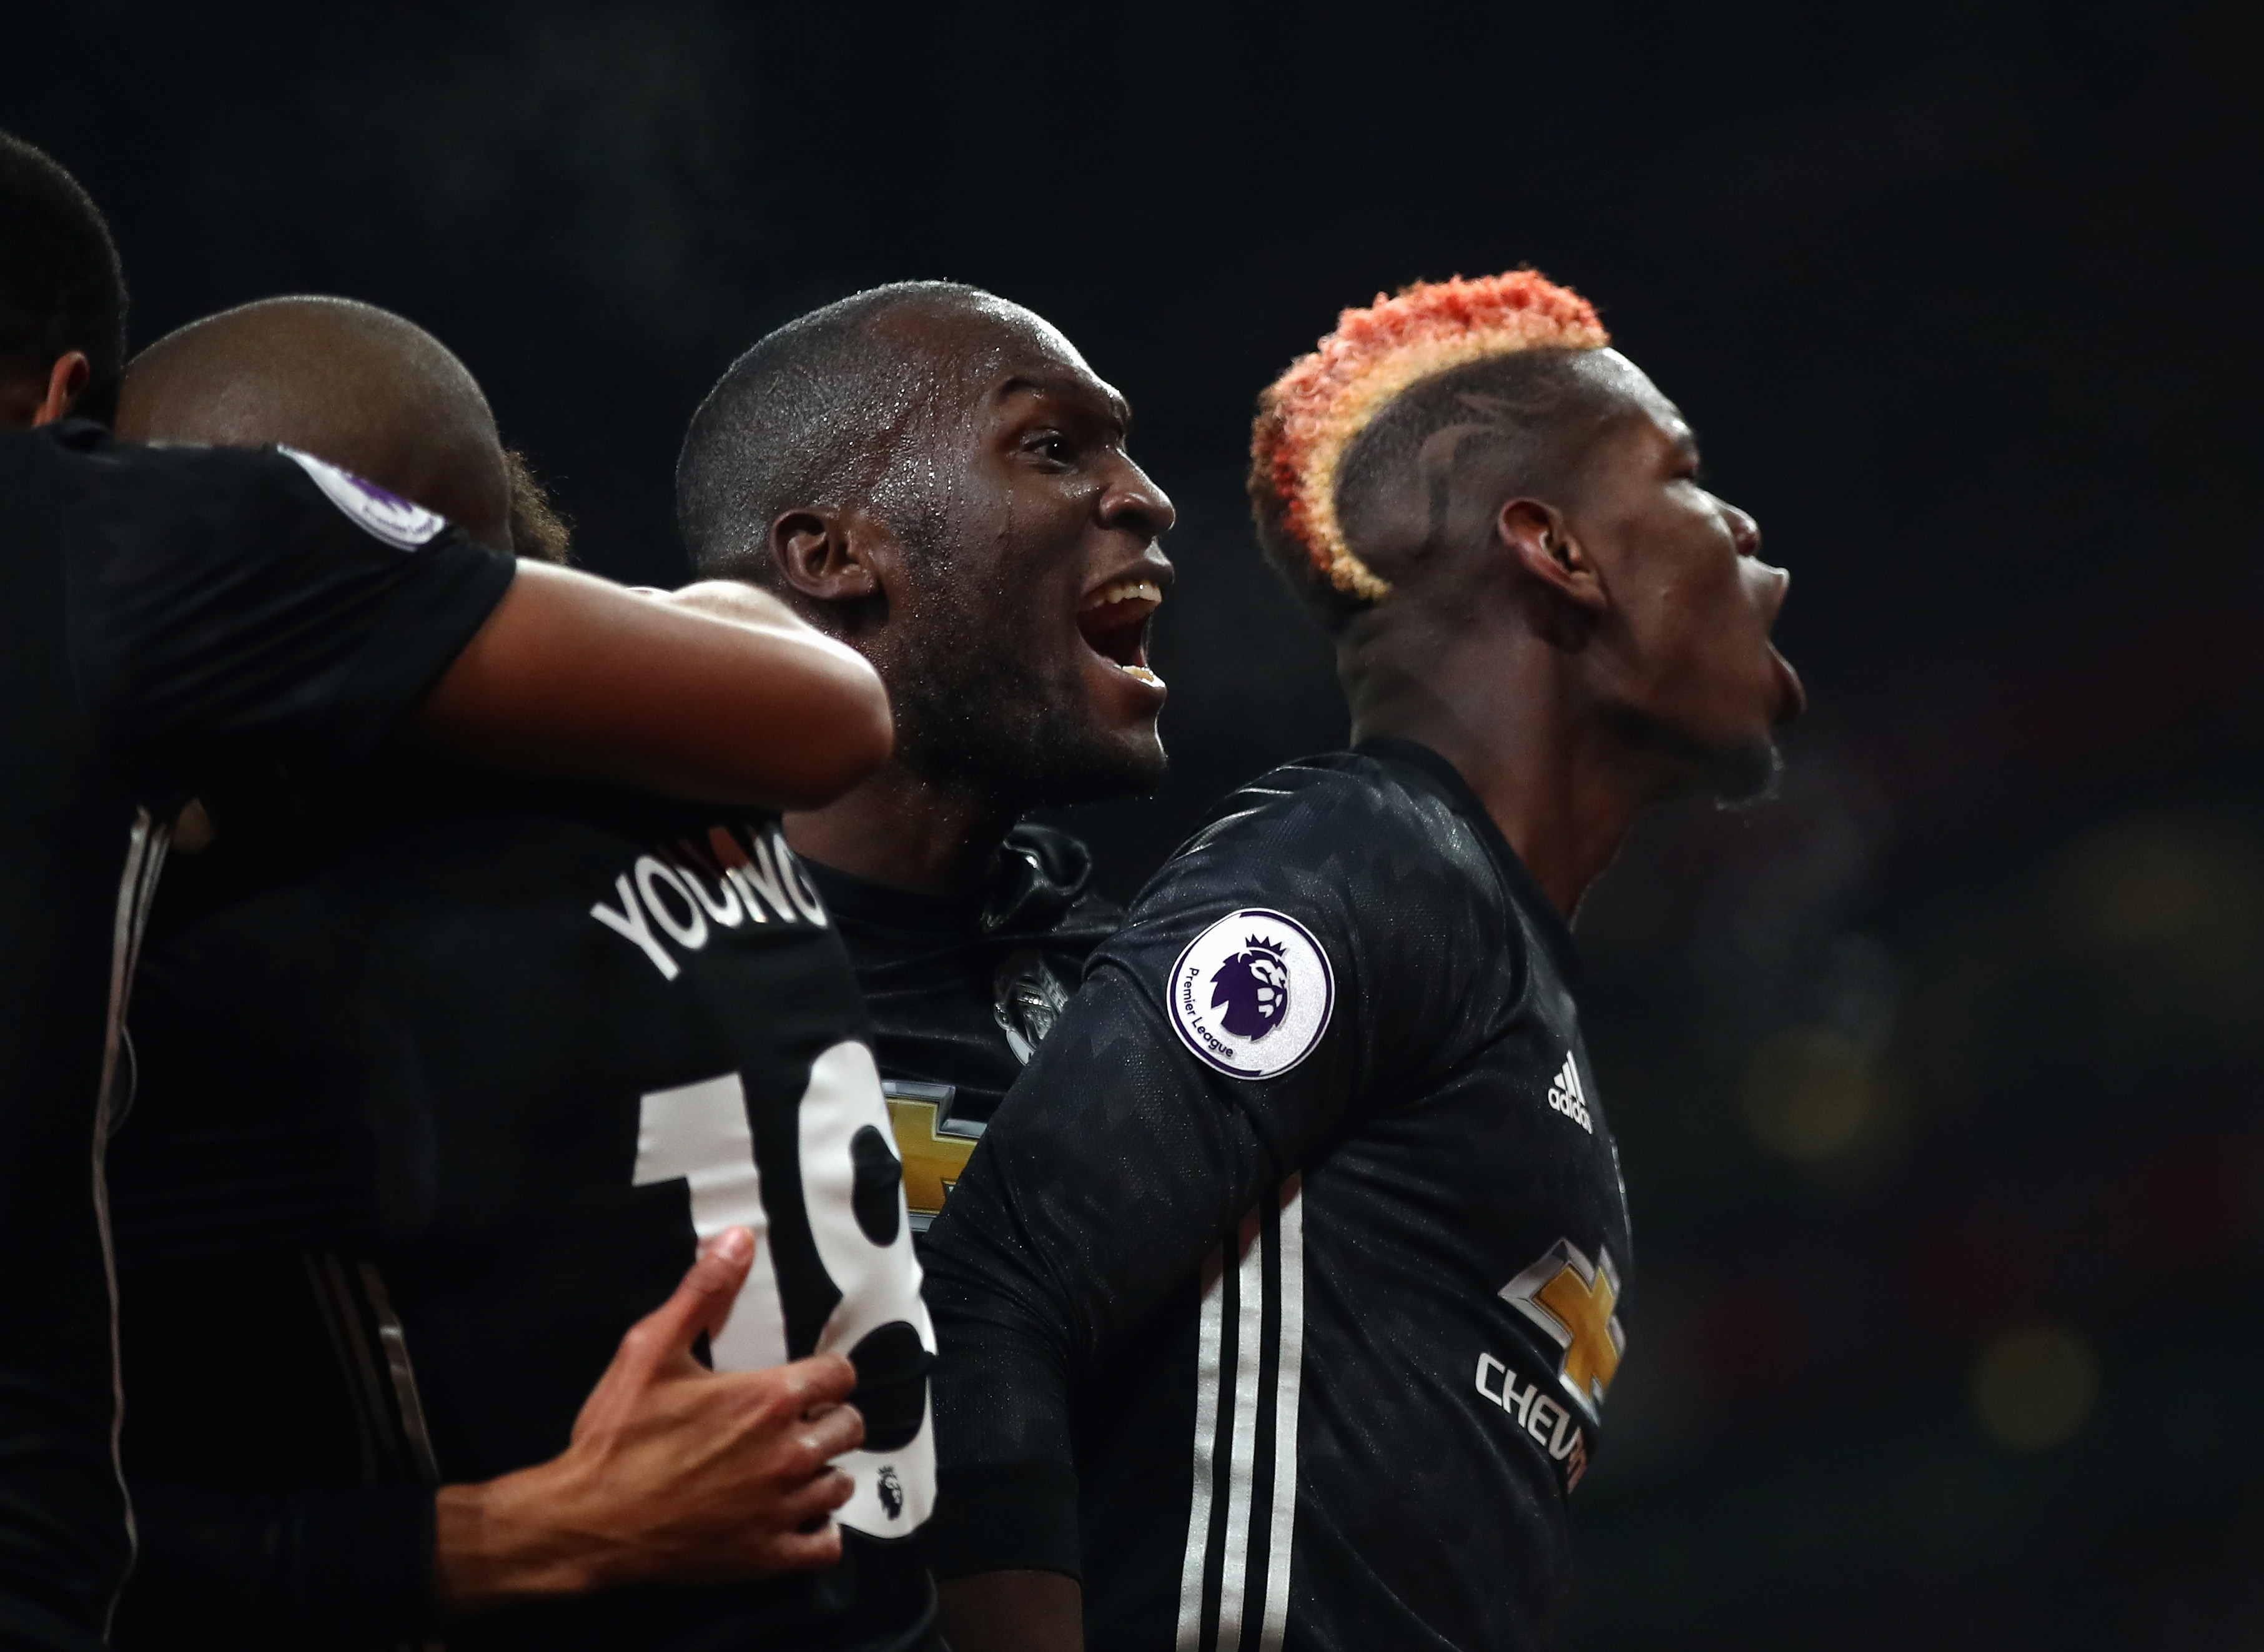 Manchester United vs Manchester City: Why I want Pogba to play - Guardiola